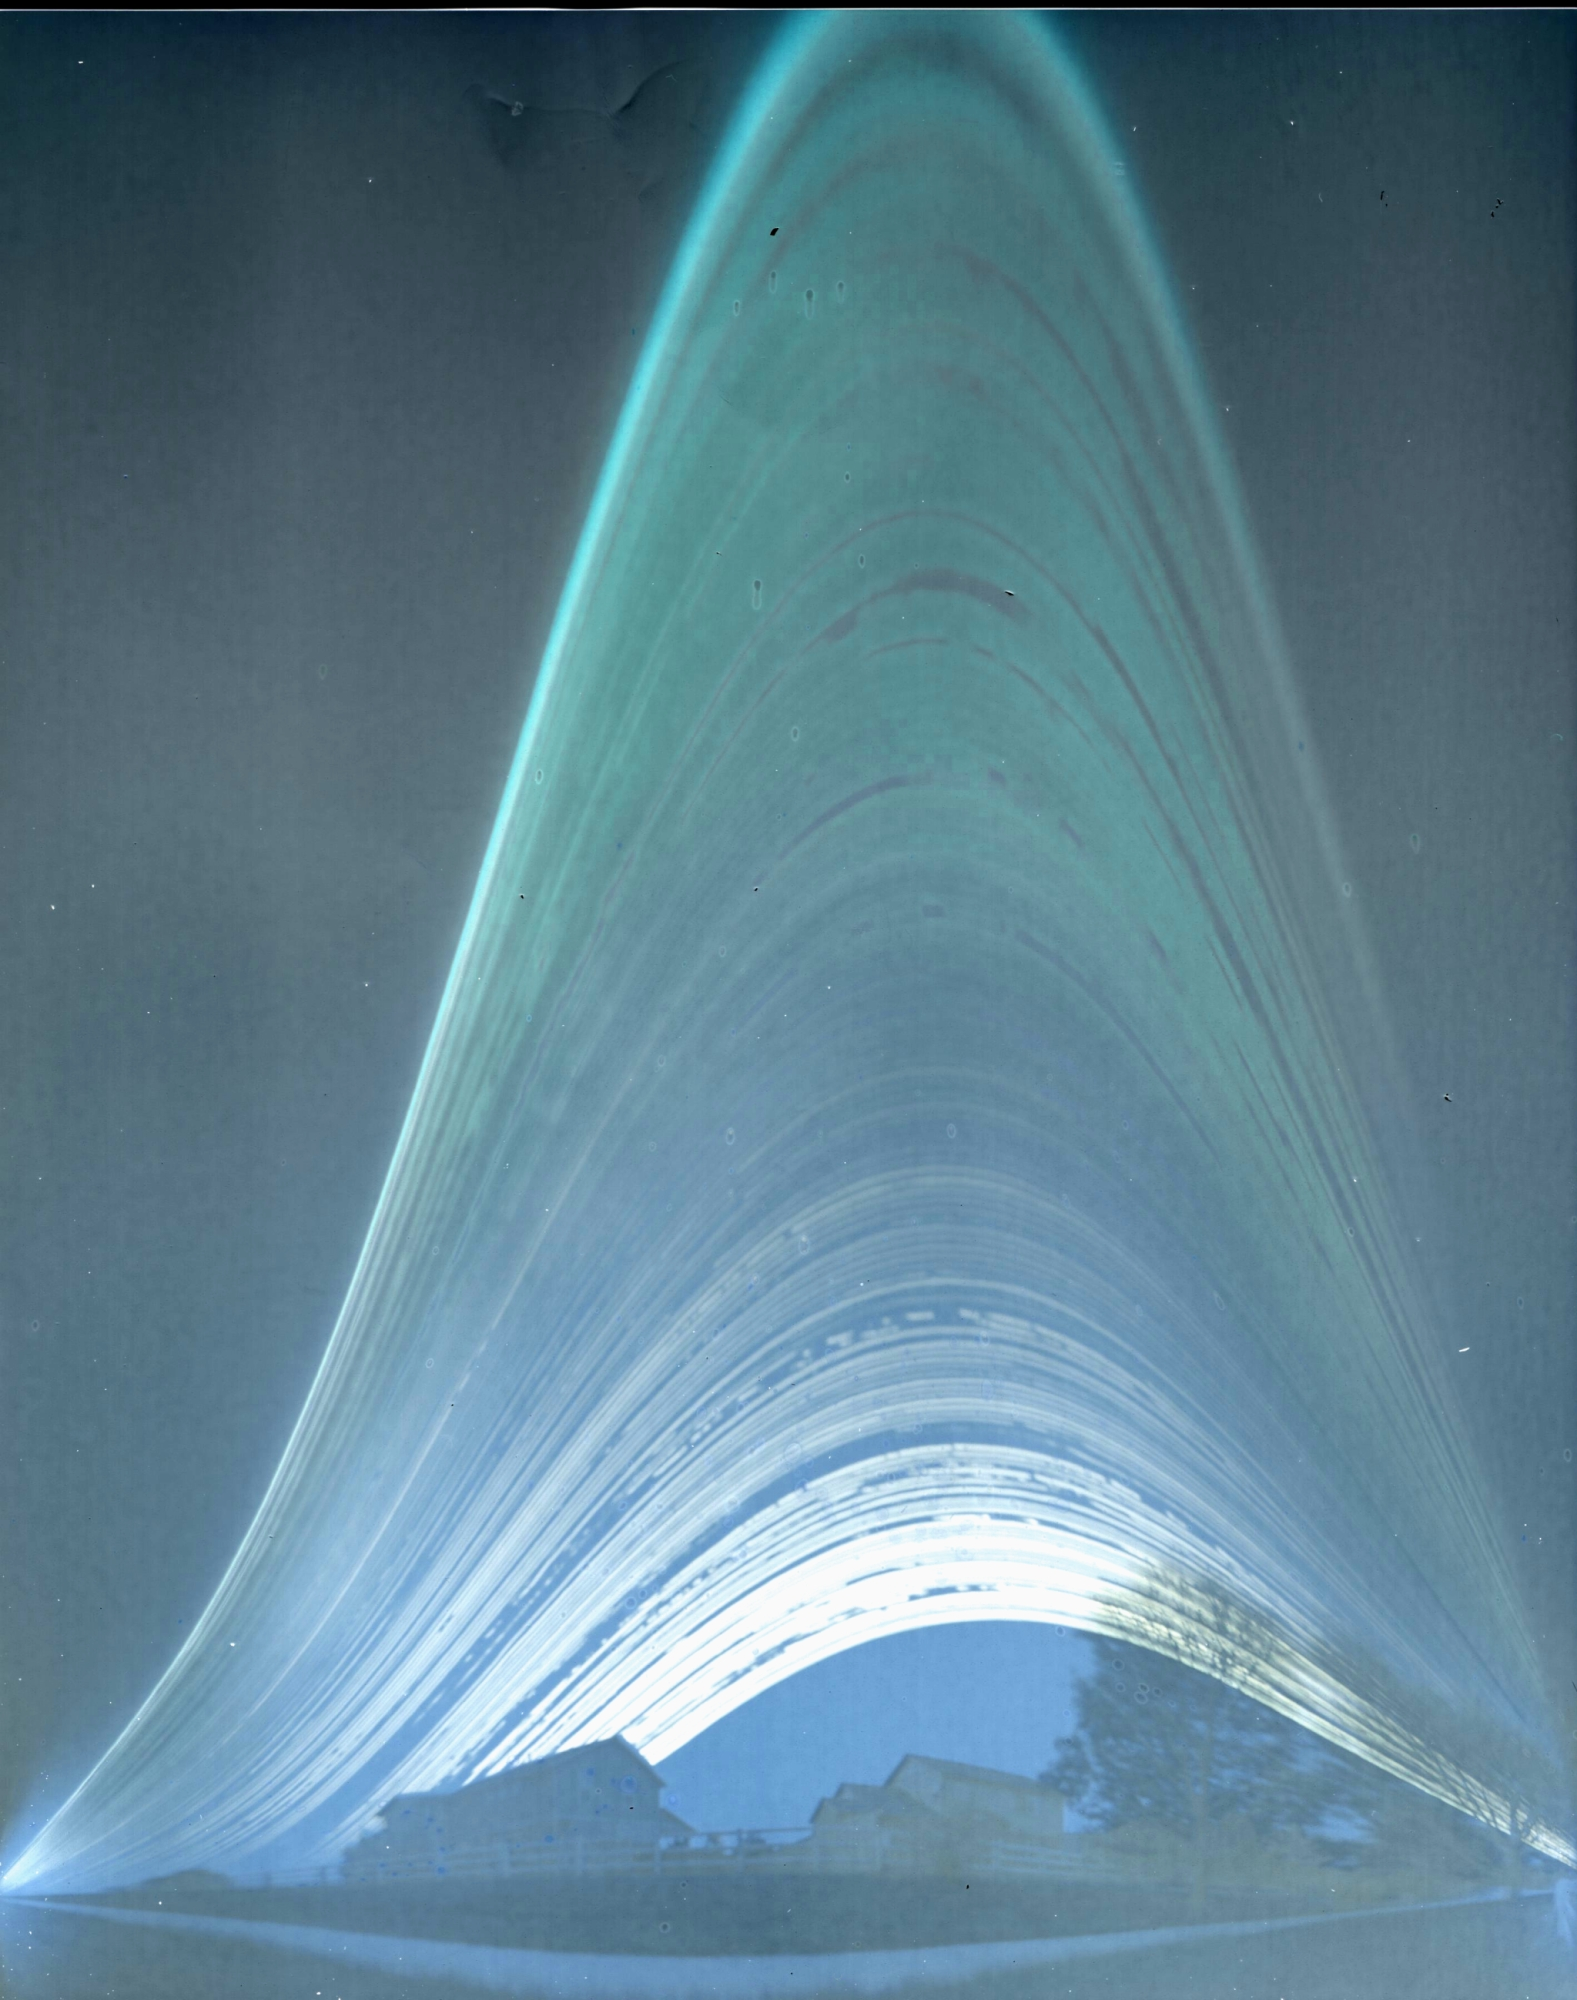 Six-month exposure solargraph by Dan Staley